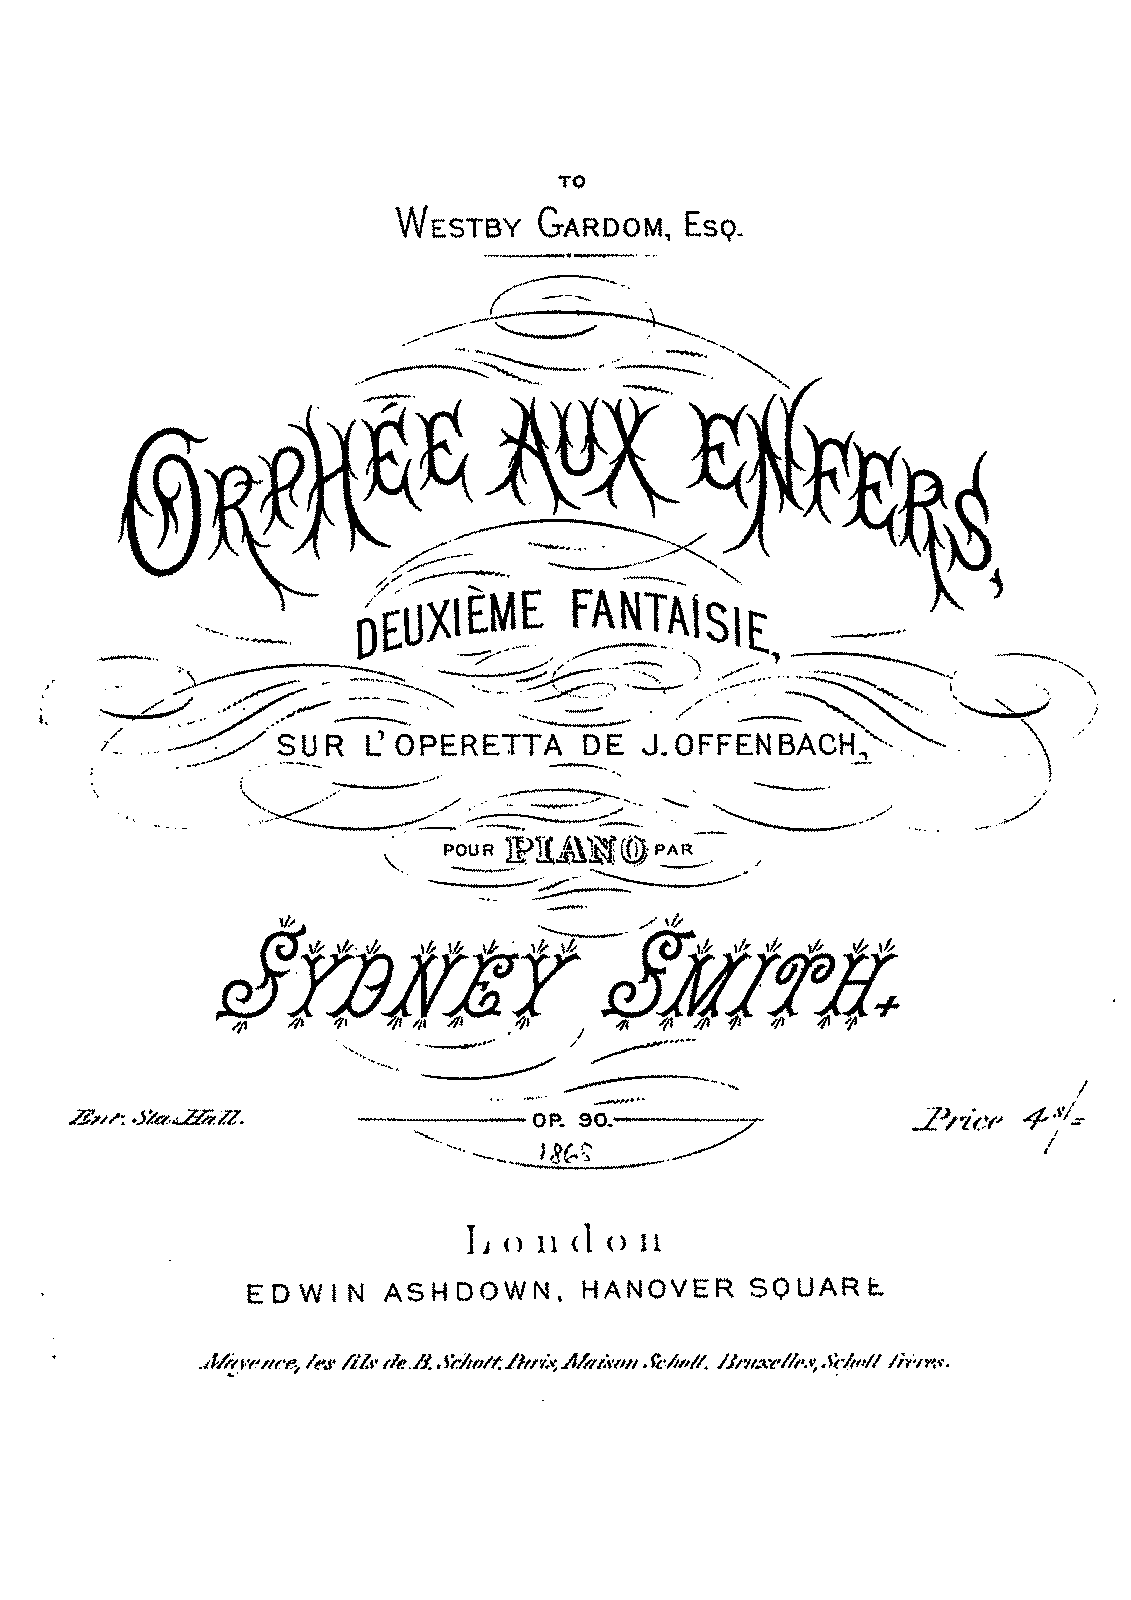 PMLP112960-Smith, Sydney op.90 offenbach orphee aux enfers.pdf